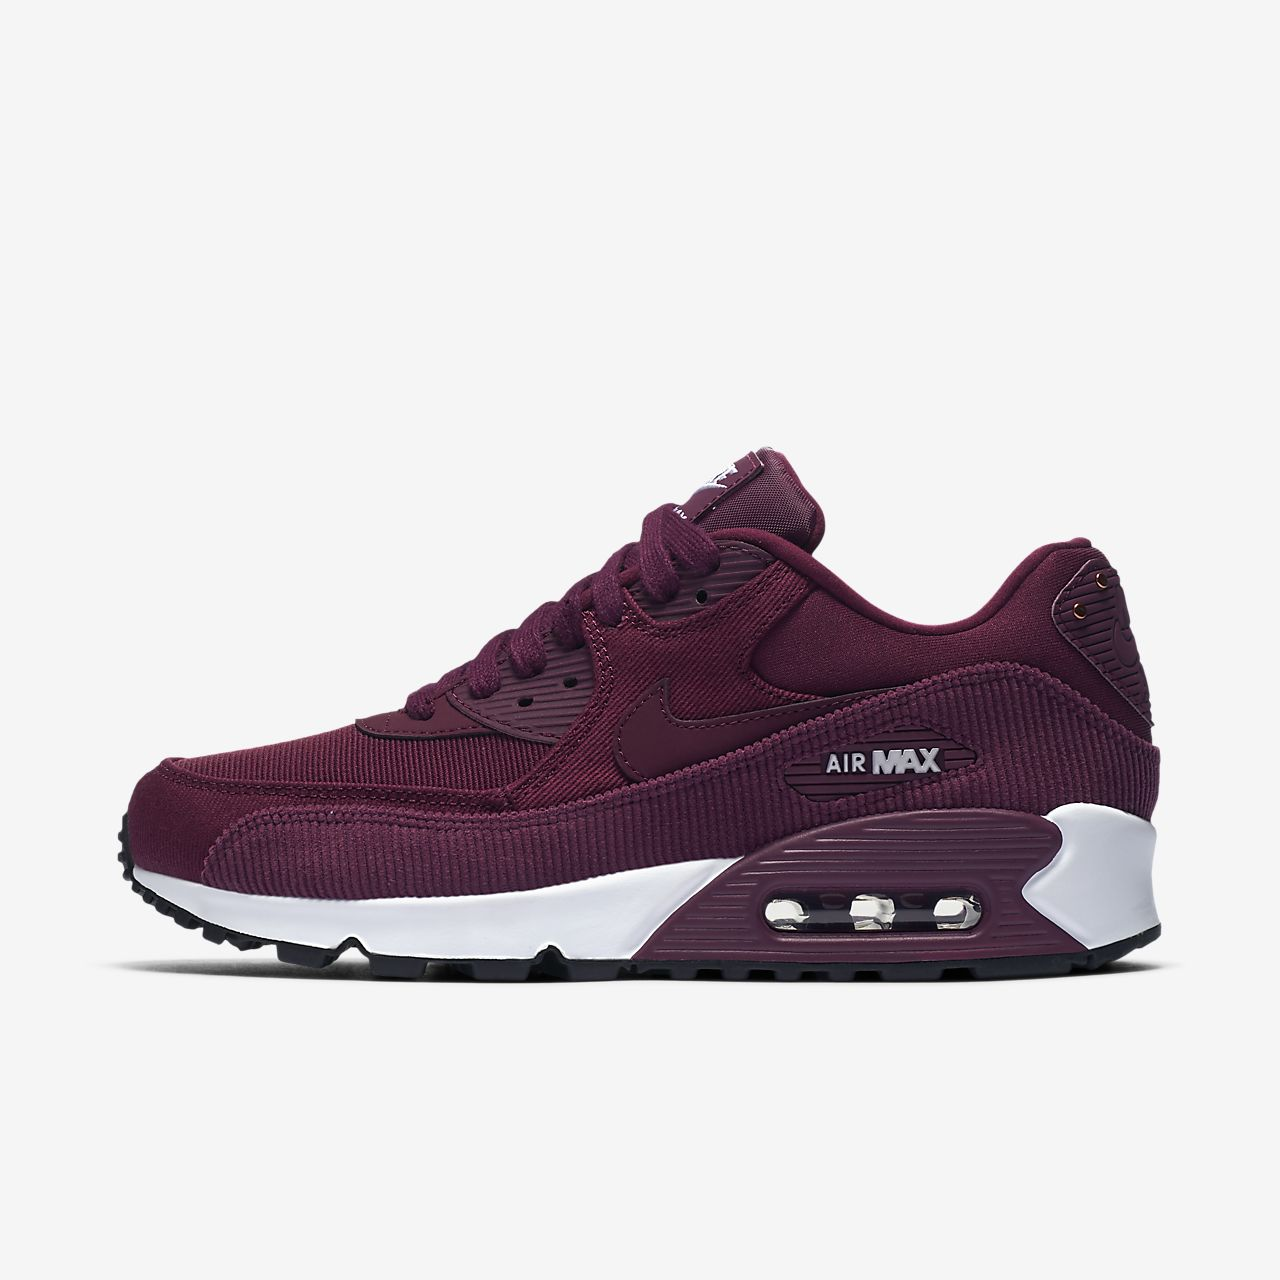 Fashion week Women air max 90 Nike pictures for lady